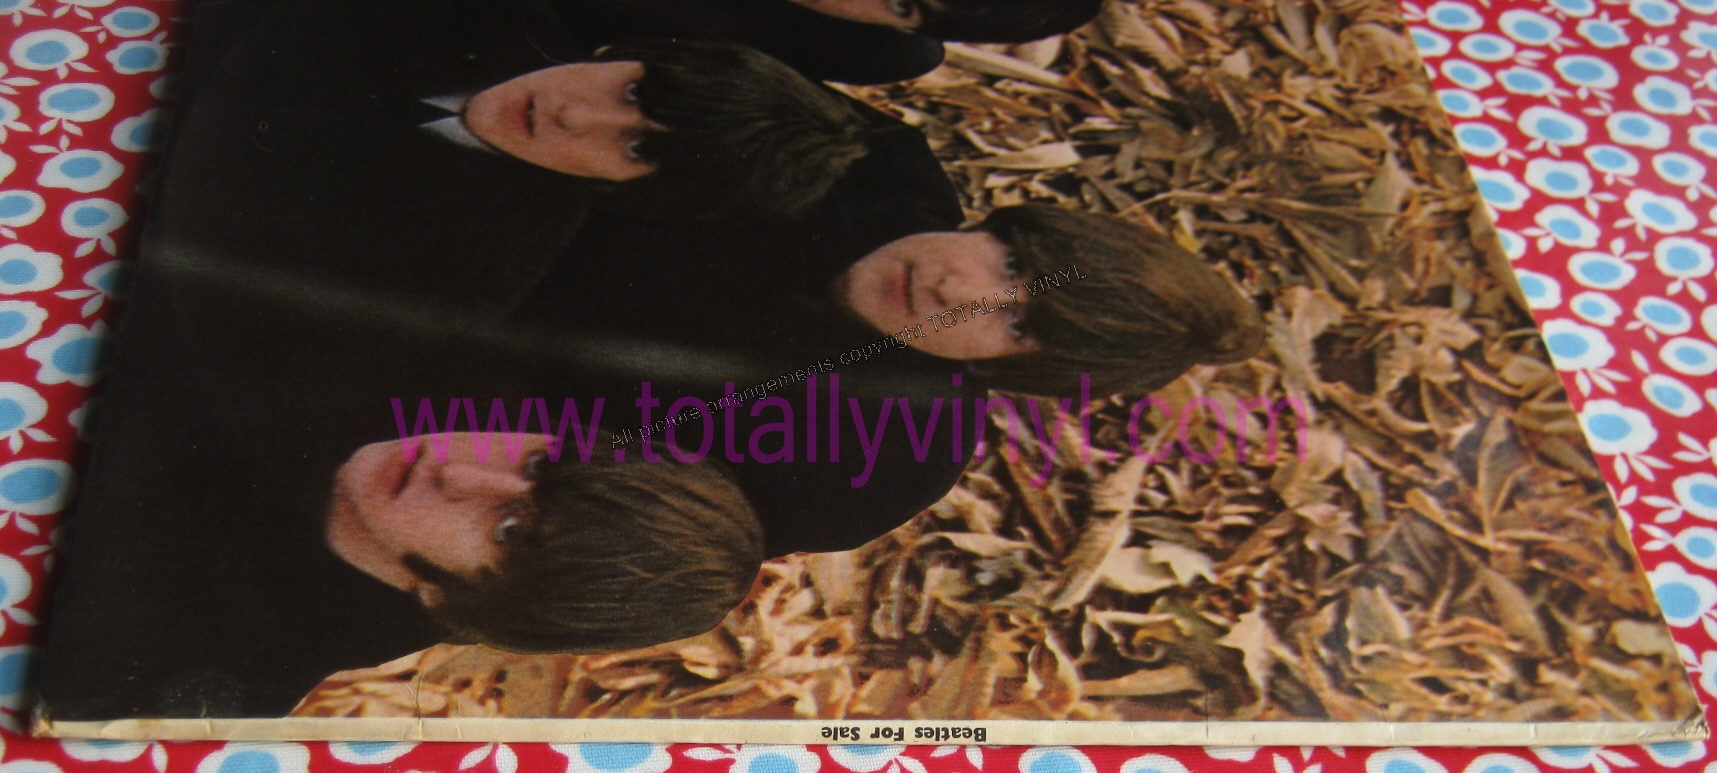 Totally Vinyl Records Beatles The Beatles For Sale Lp